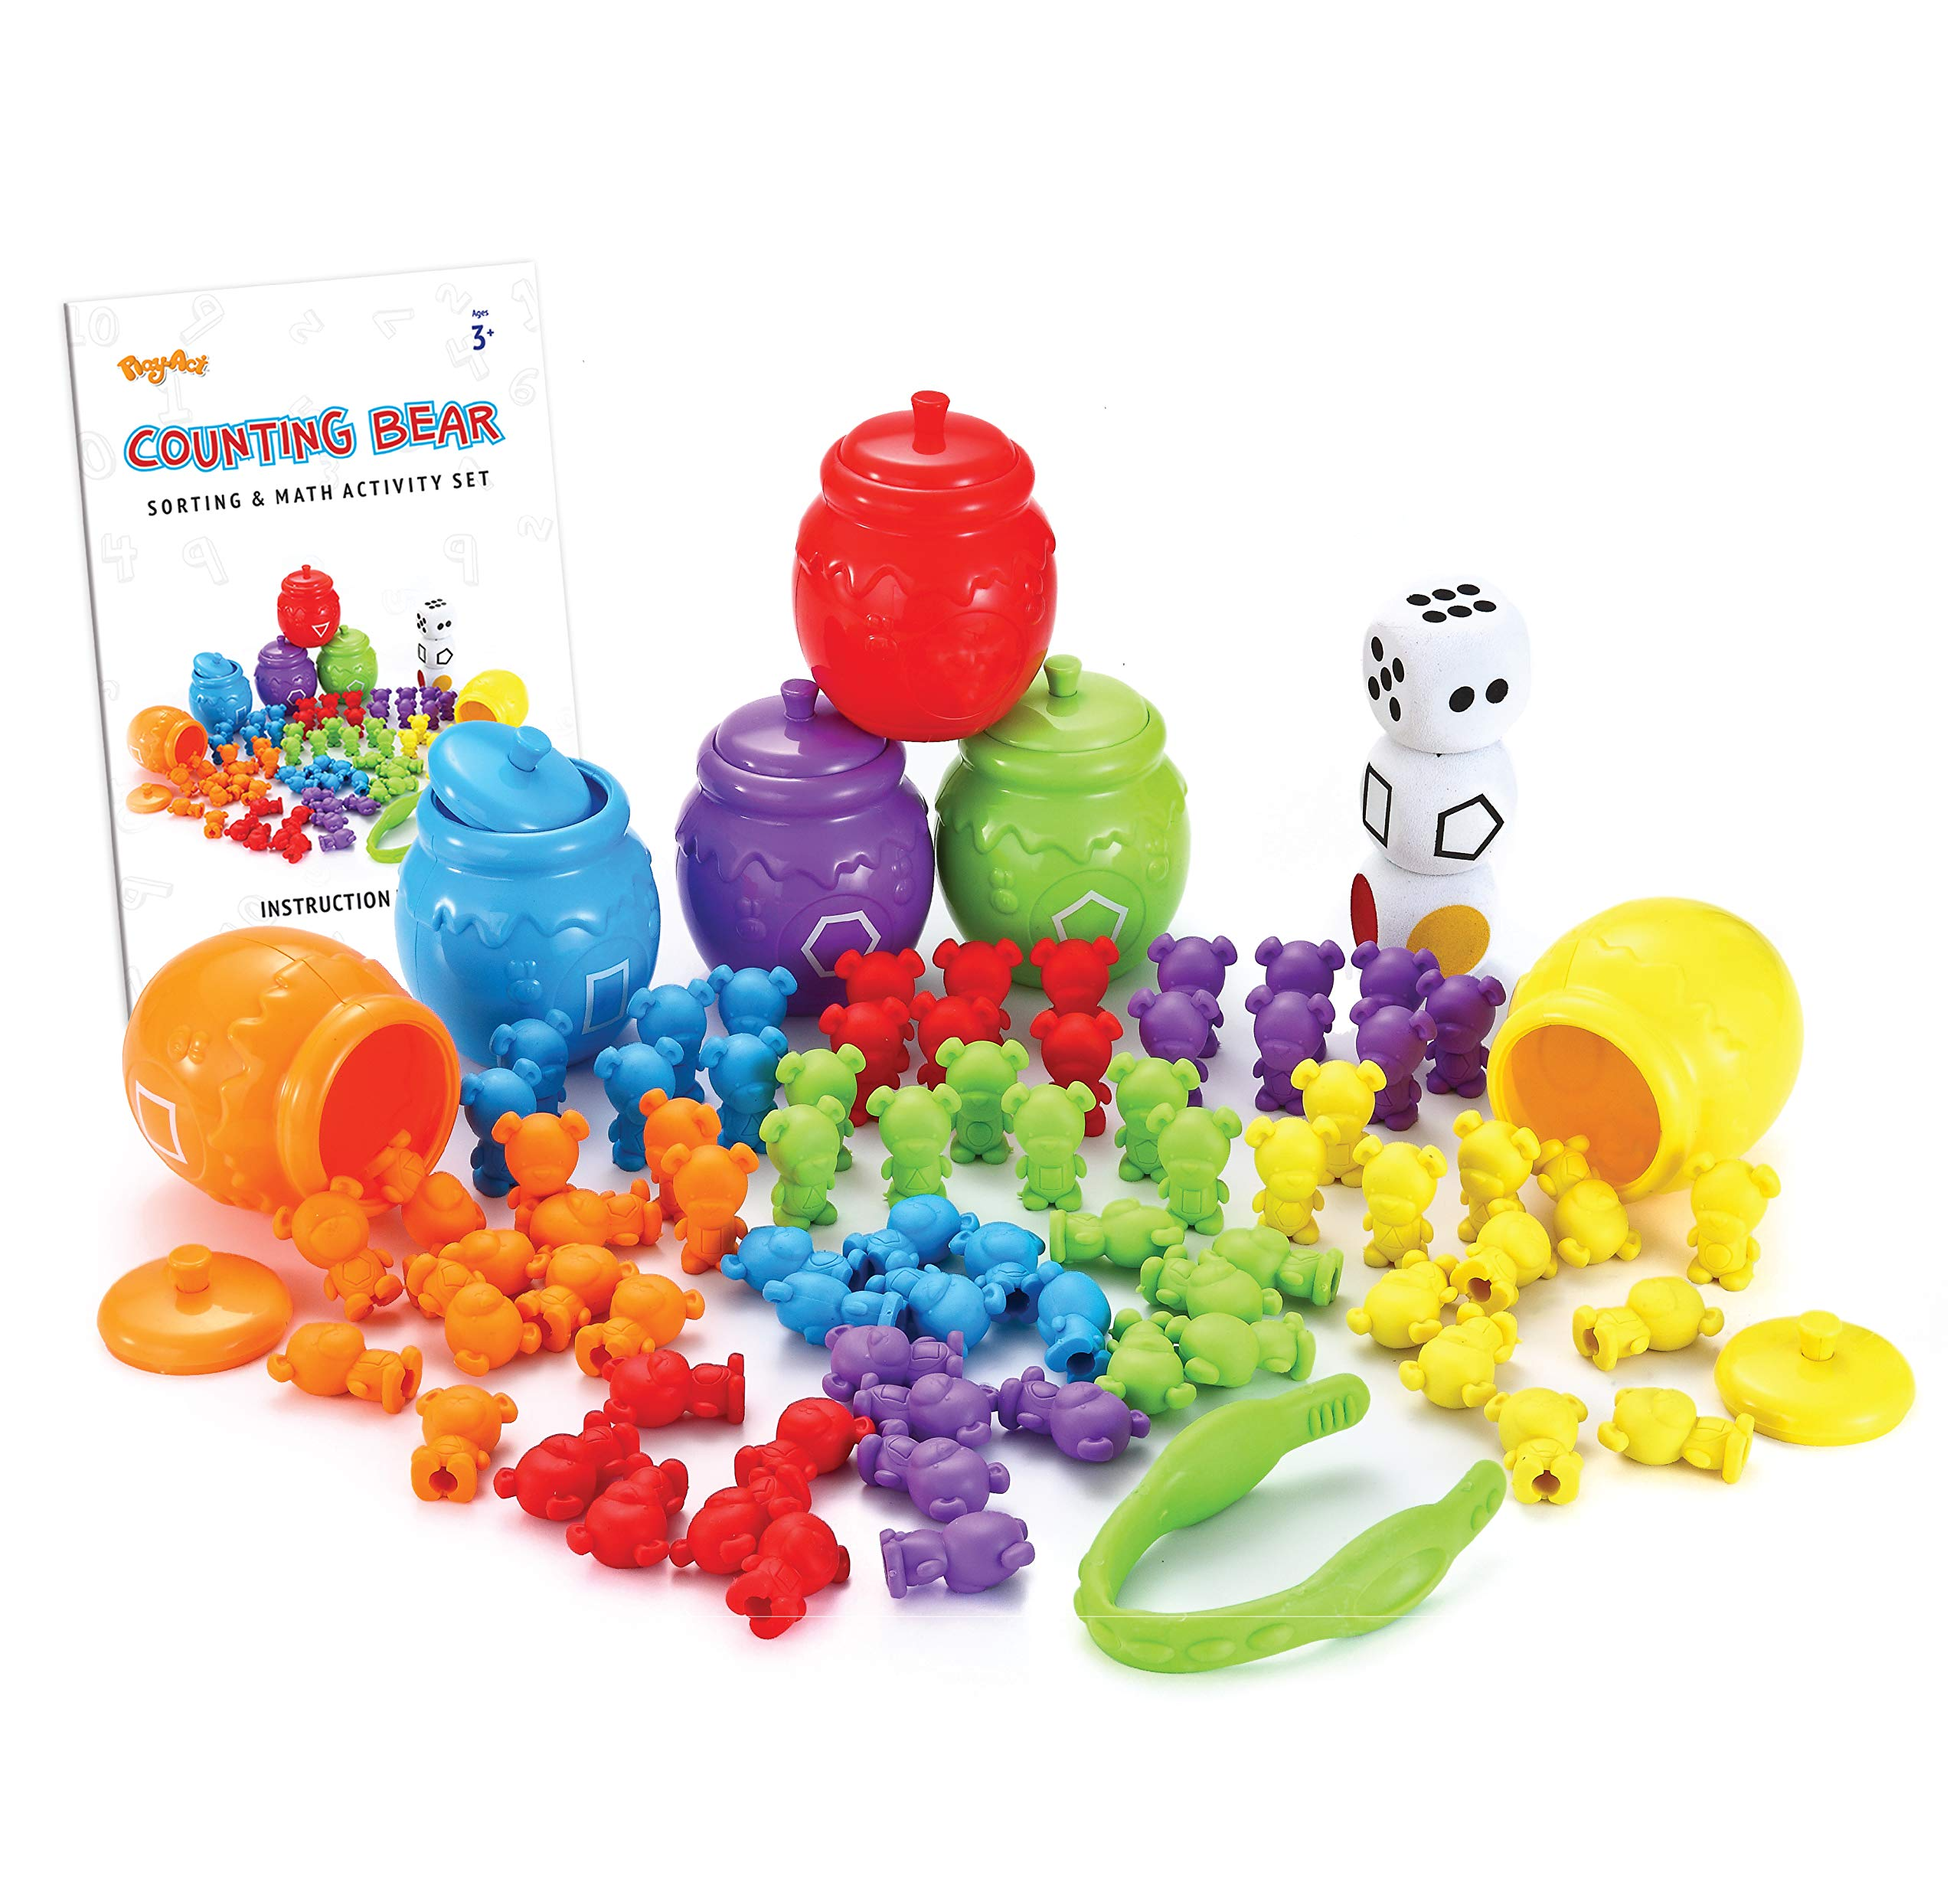 JOYIN Play-Act Counting/Sorting Bears Toy Set with Matching Sorting Cups Toddler Game for Pre-School Learning Color Recognition STEM Educational Toy-72 Bears, Fine Motor Tool, Dice and Activity Book by JOYIN